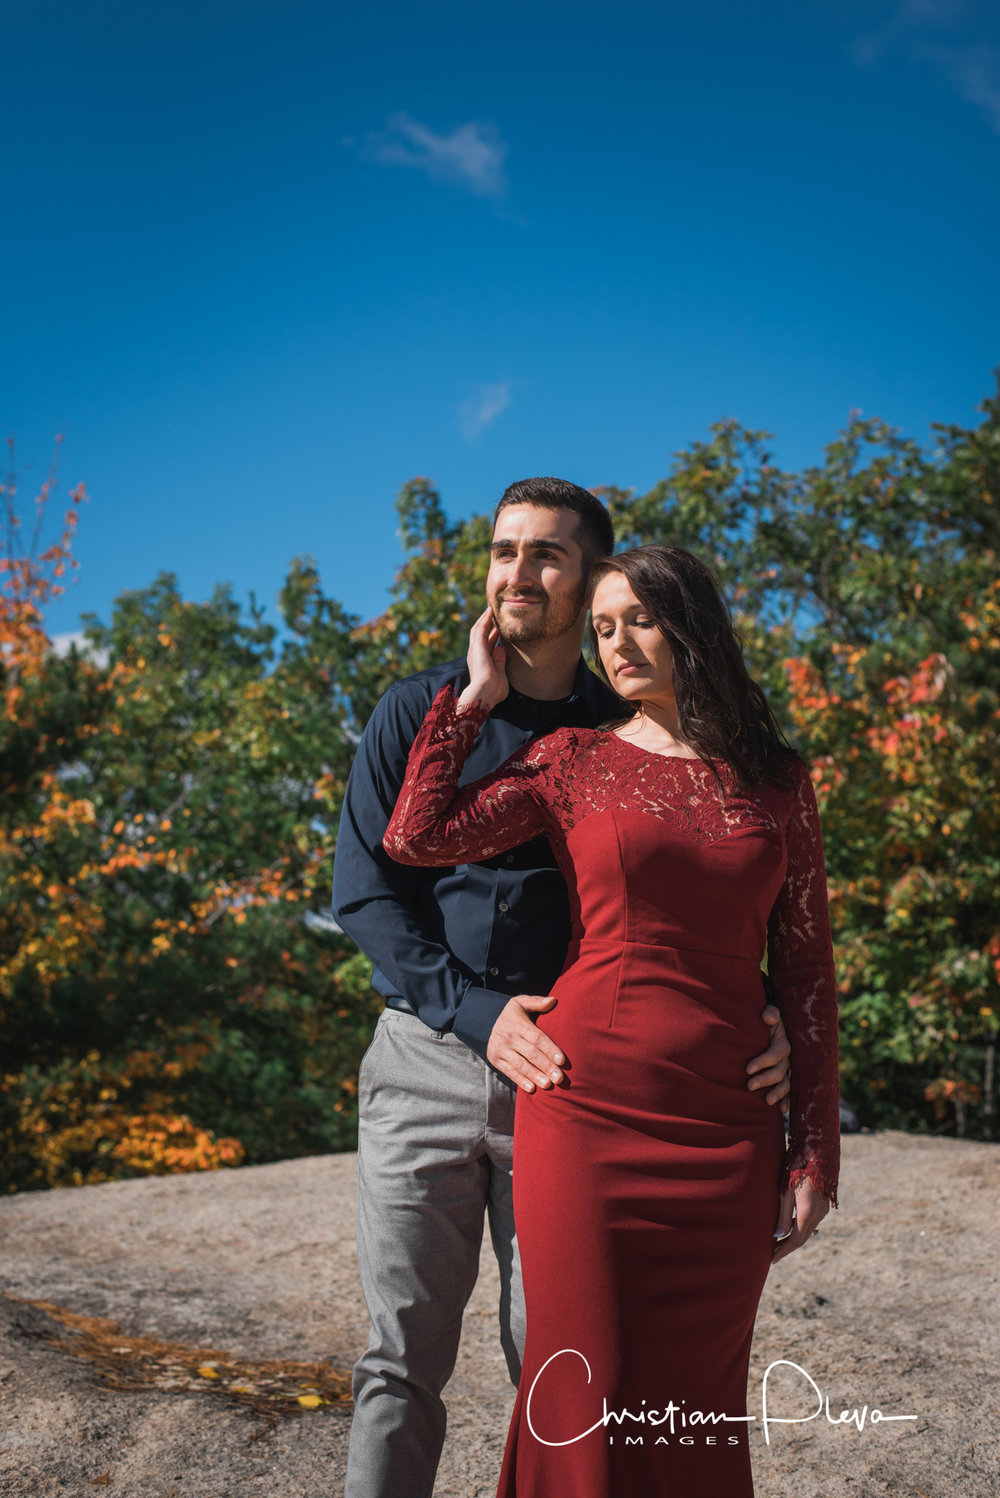 Boston Engagement Photography  B&A-3.jpg